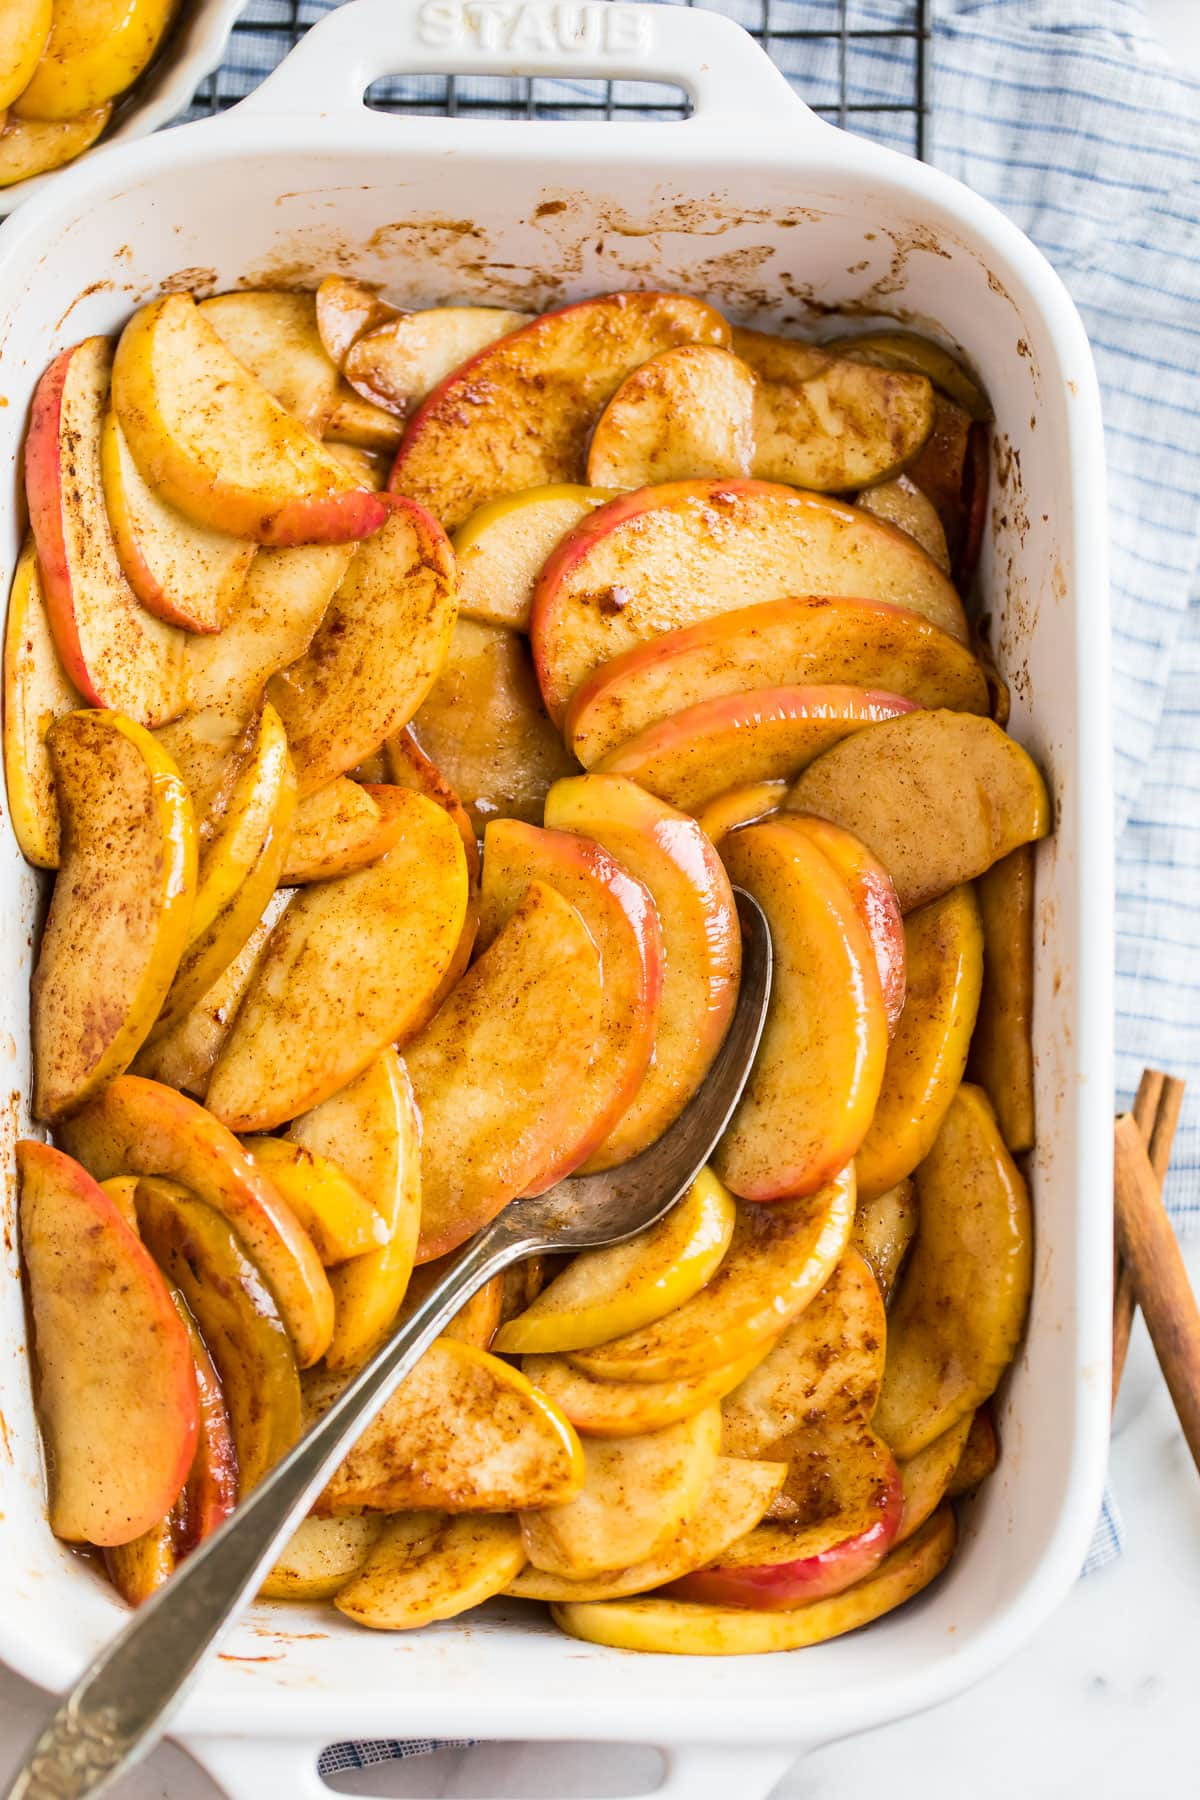 Cinnamon baked apples in a white baking dish